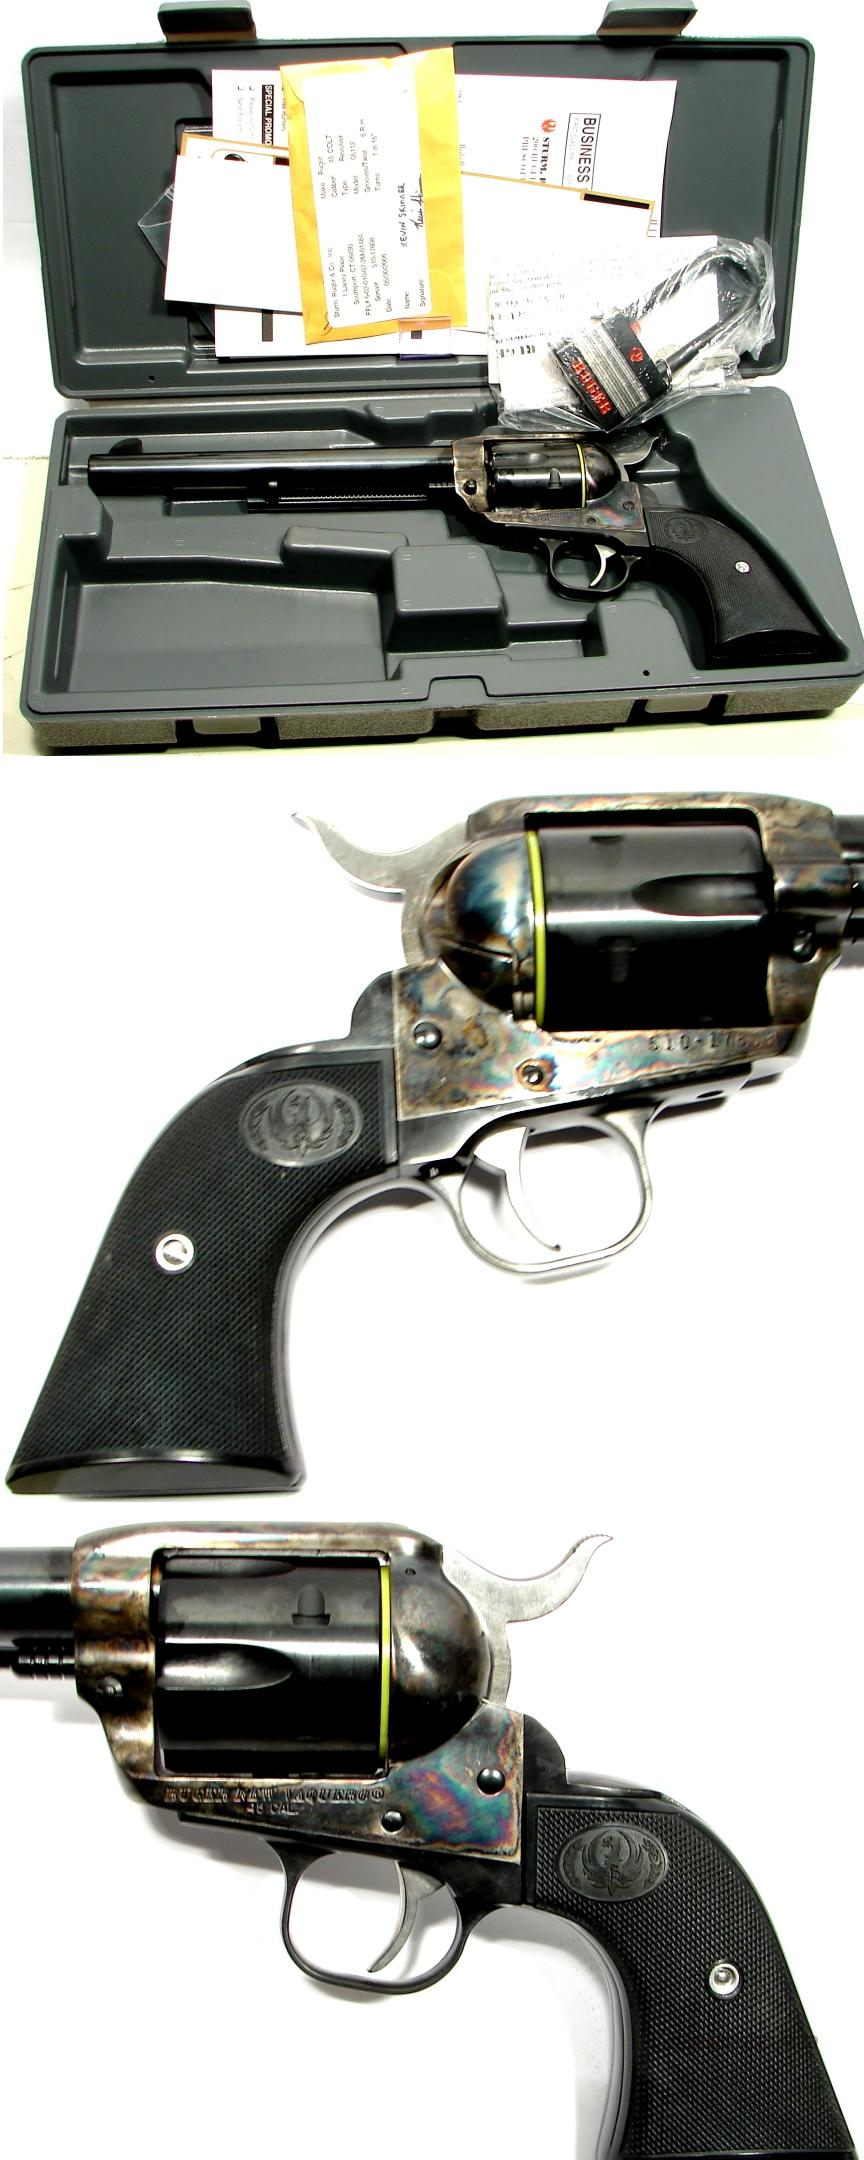 "Ruger Vaquero B/CC 7 1/2"" 45 Long Colt NICE  Guns > Pistols > Ruger Single Action Revolvers > Cowboy Action"